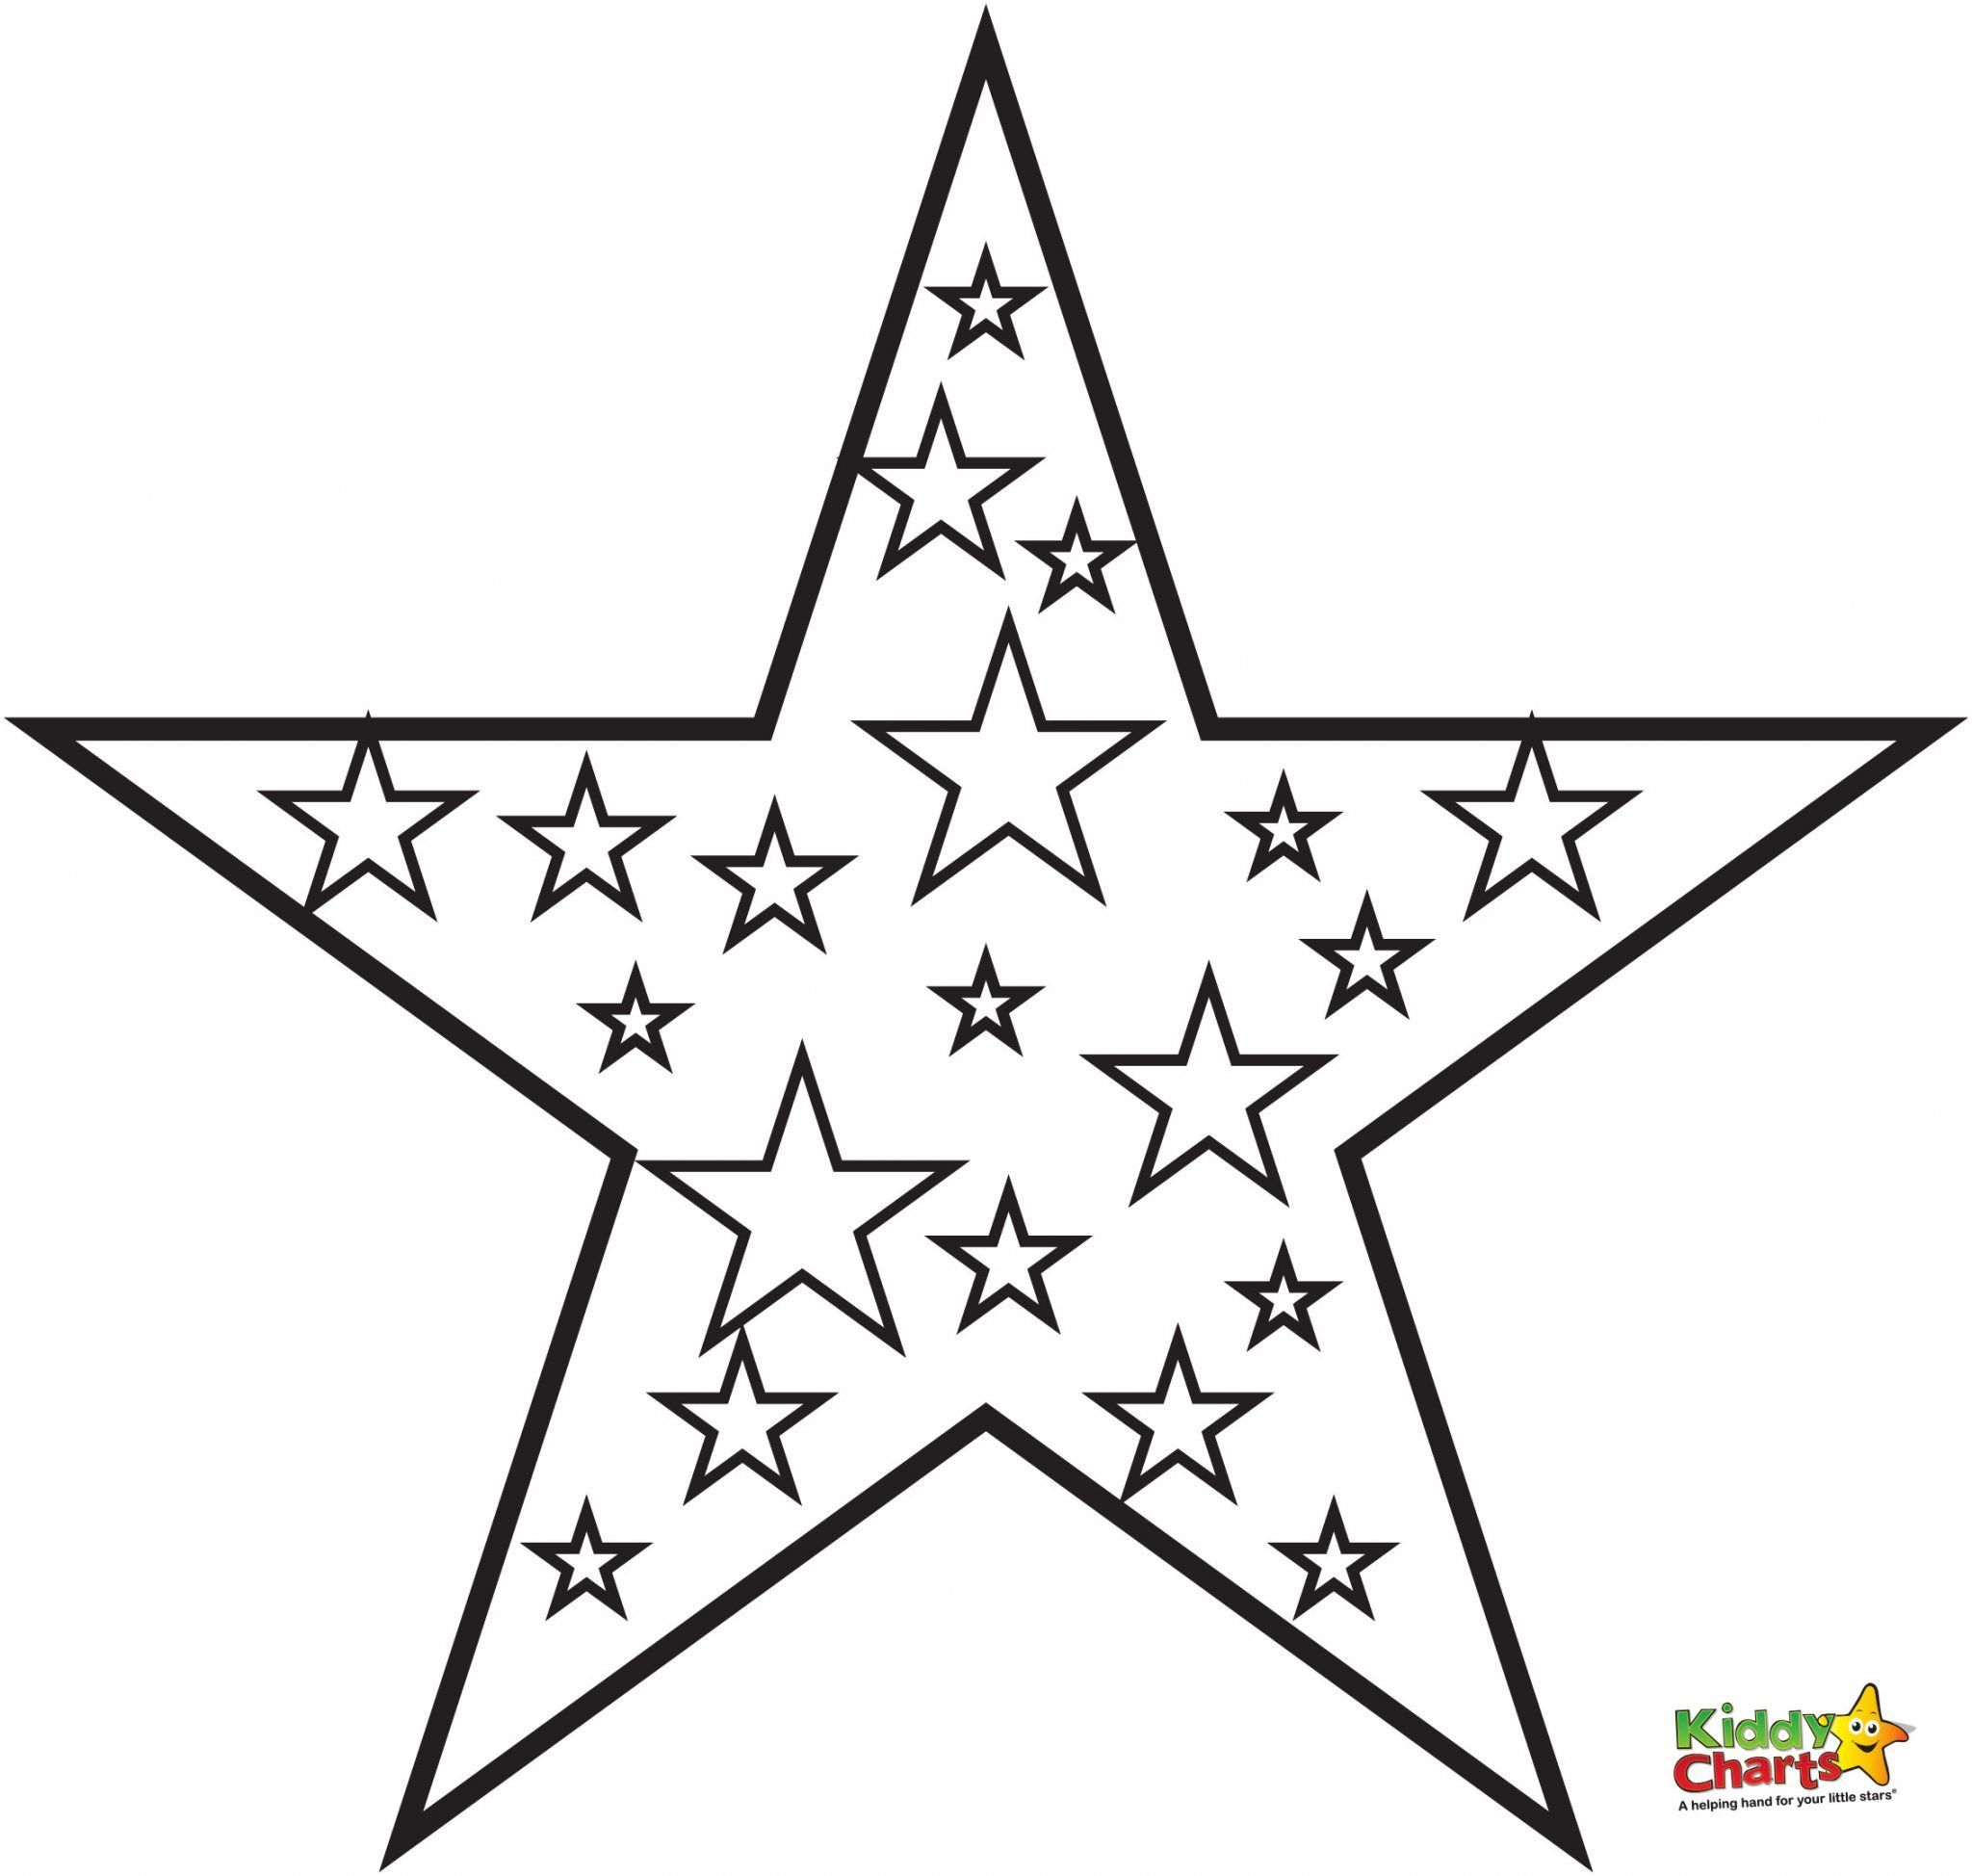 Free Printables Coloring Pages For Kids Kiddycharts Com Shape Coloring Pages Star Coloring Pages Coloring Pages